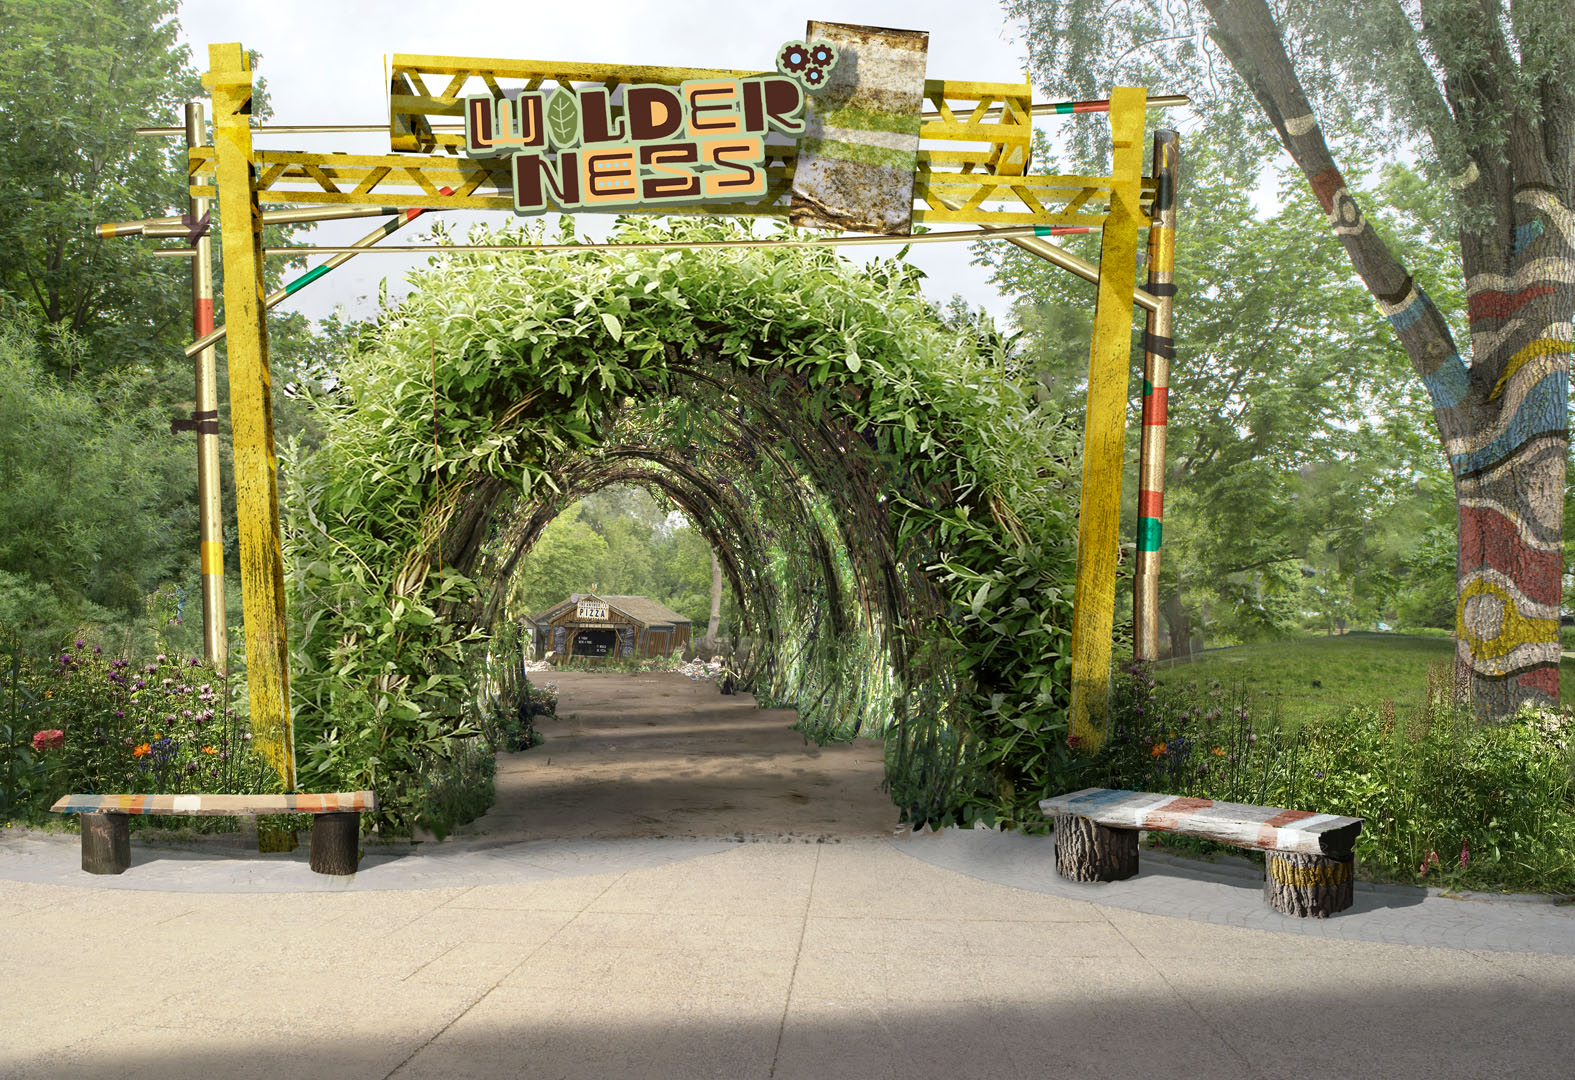 Entrance portal of the Wilderness area at Walibi Holland